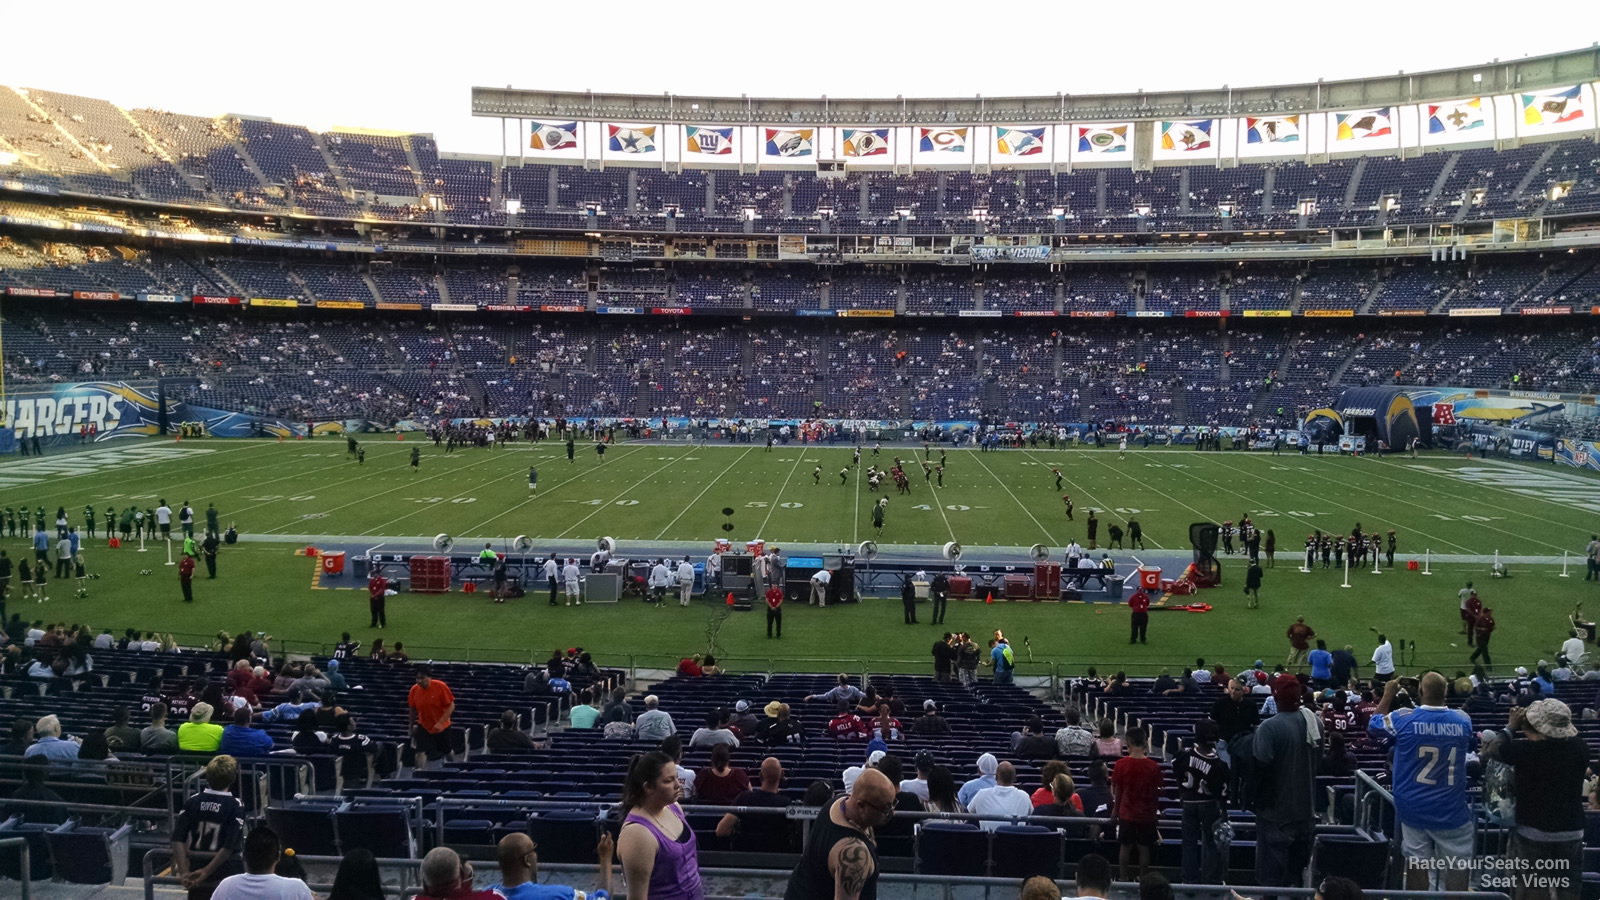 Qualcomm Stadium Plaza 6 Rateyourseats Com